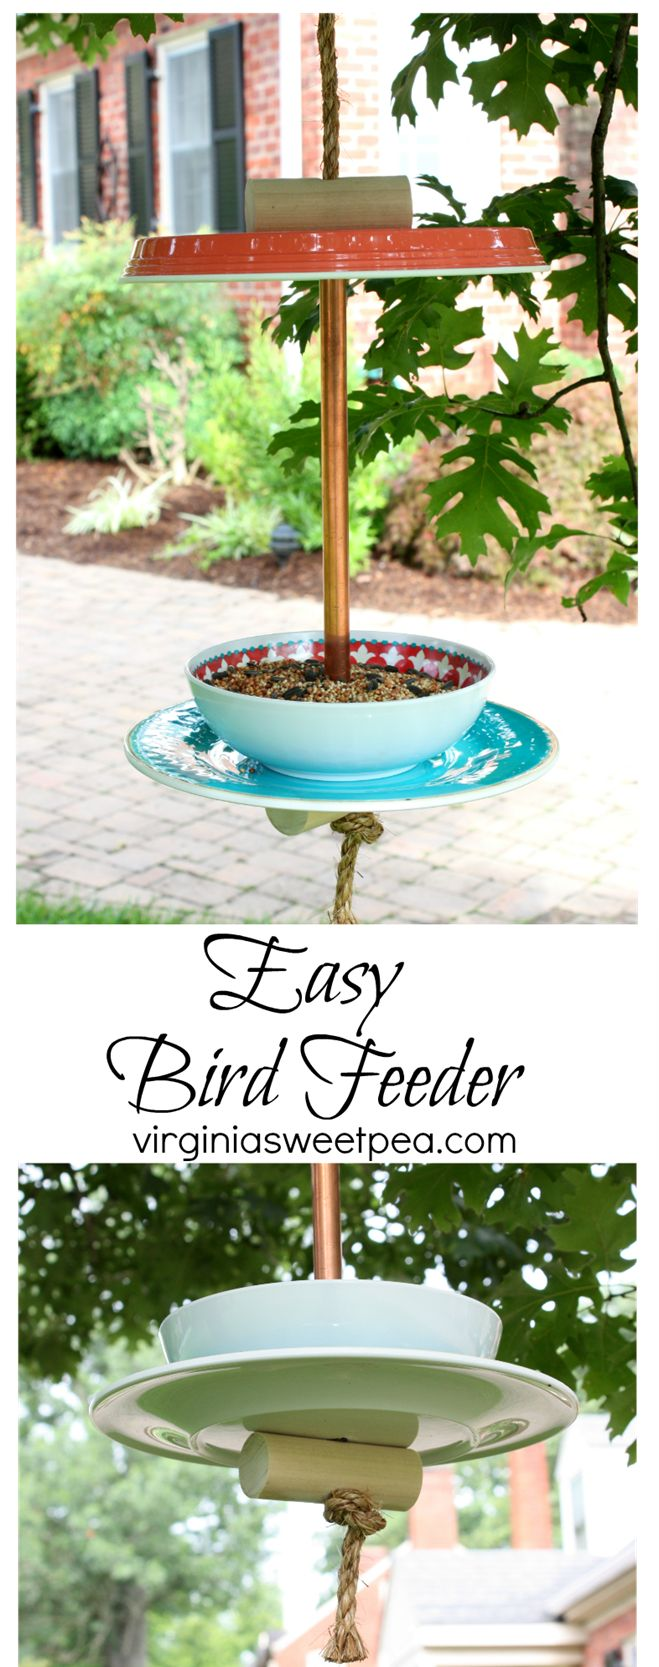 78 images about birdhouses and feeders on pinterest for Plastic bird feeders